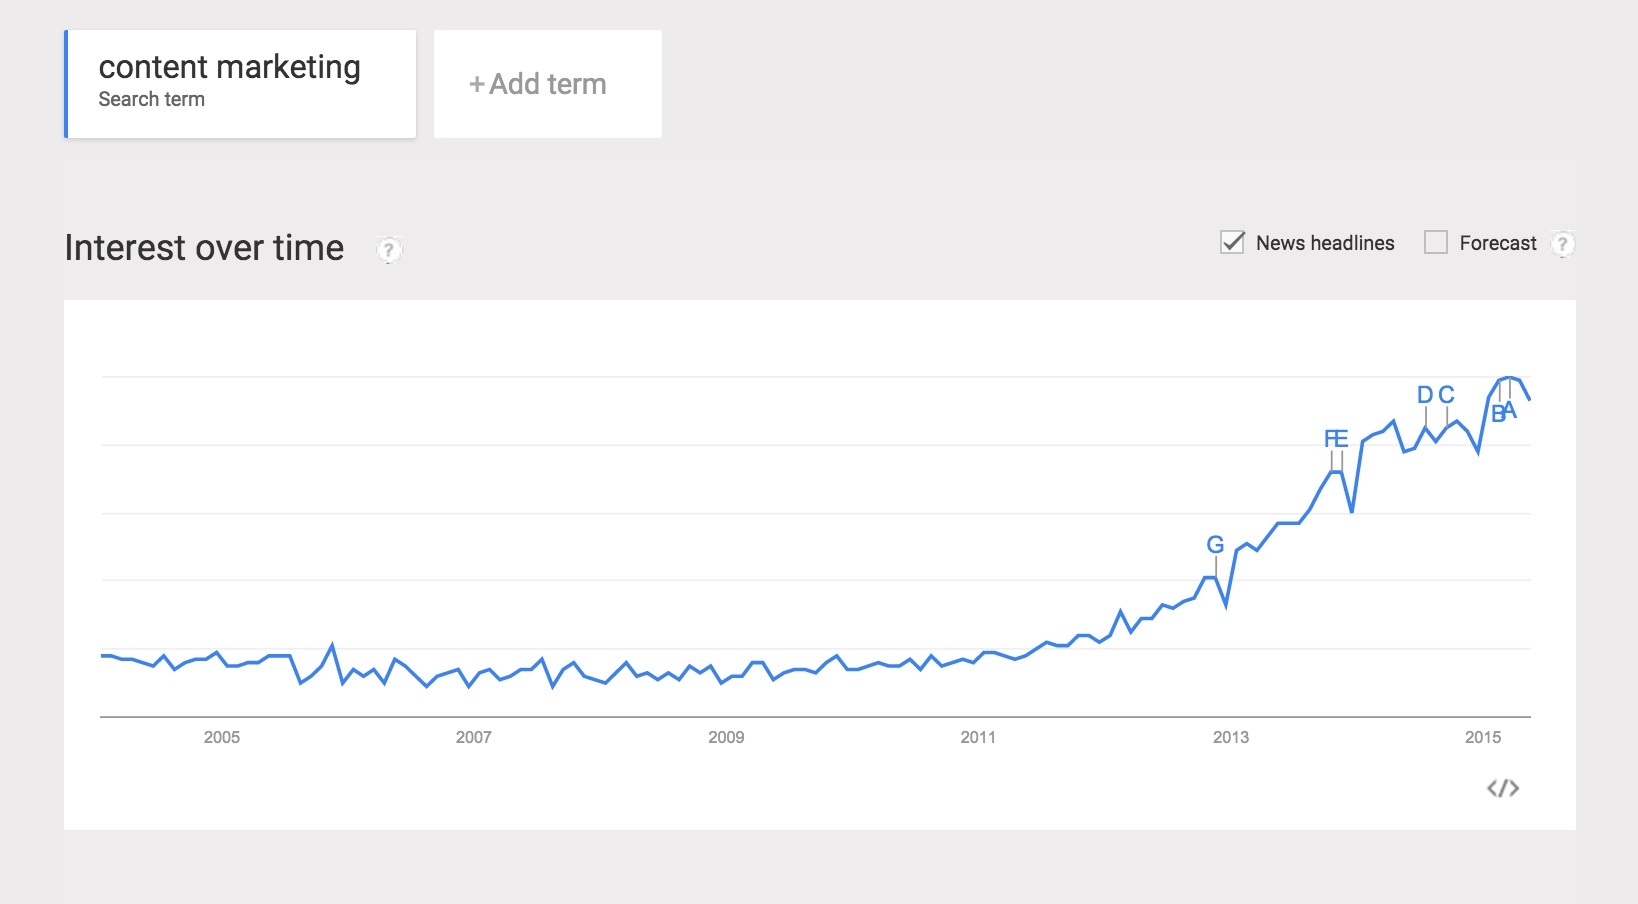 Readability - Google Trends